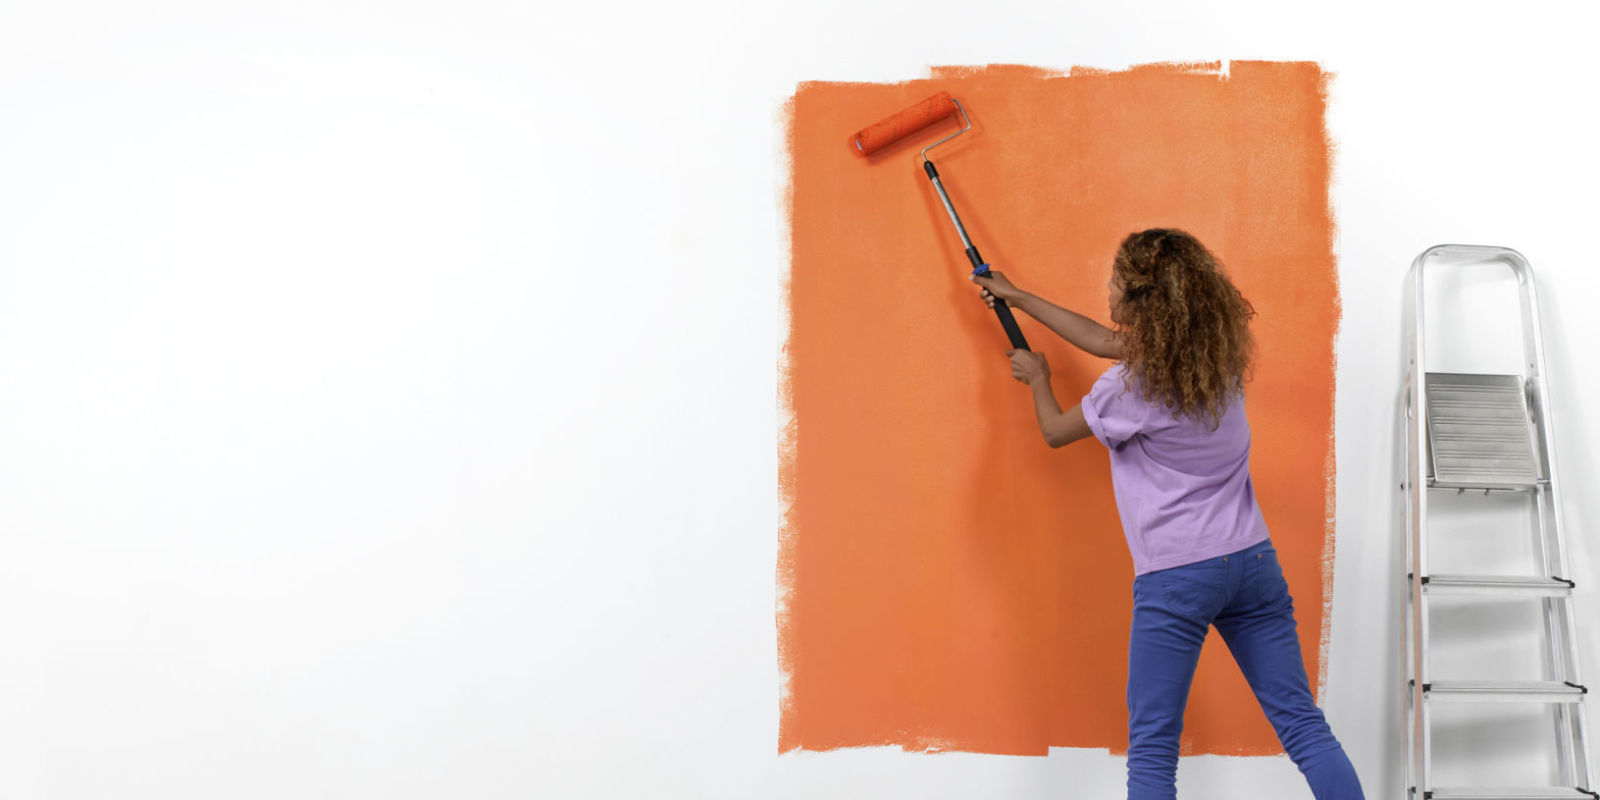 How to paint a room best ways to paint a room Best paint to use on walls